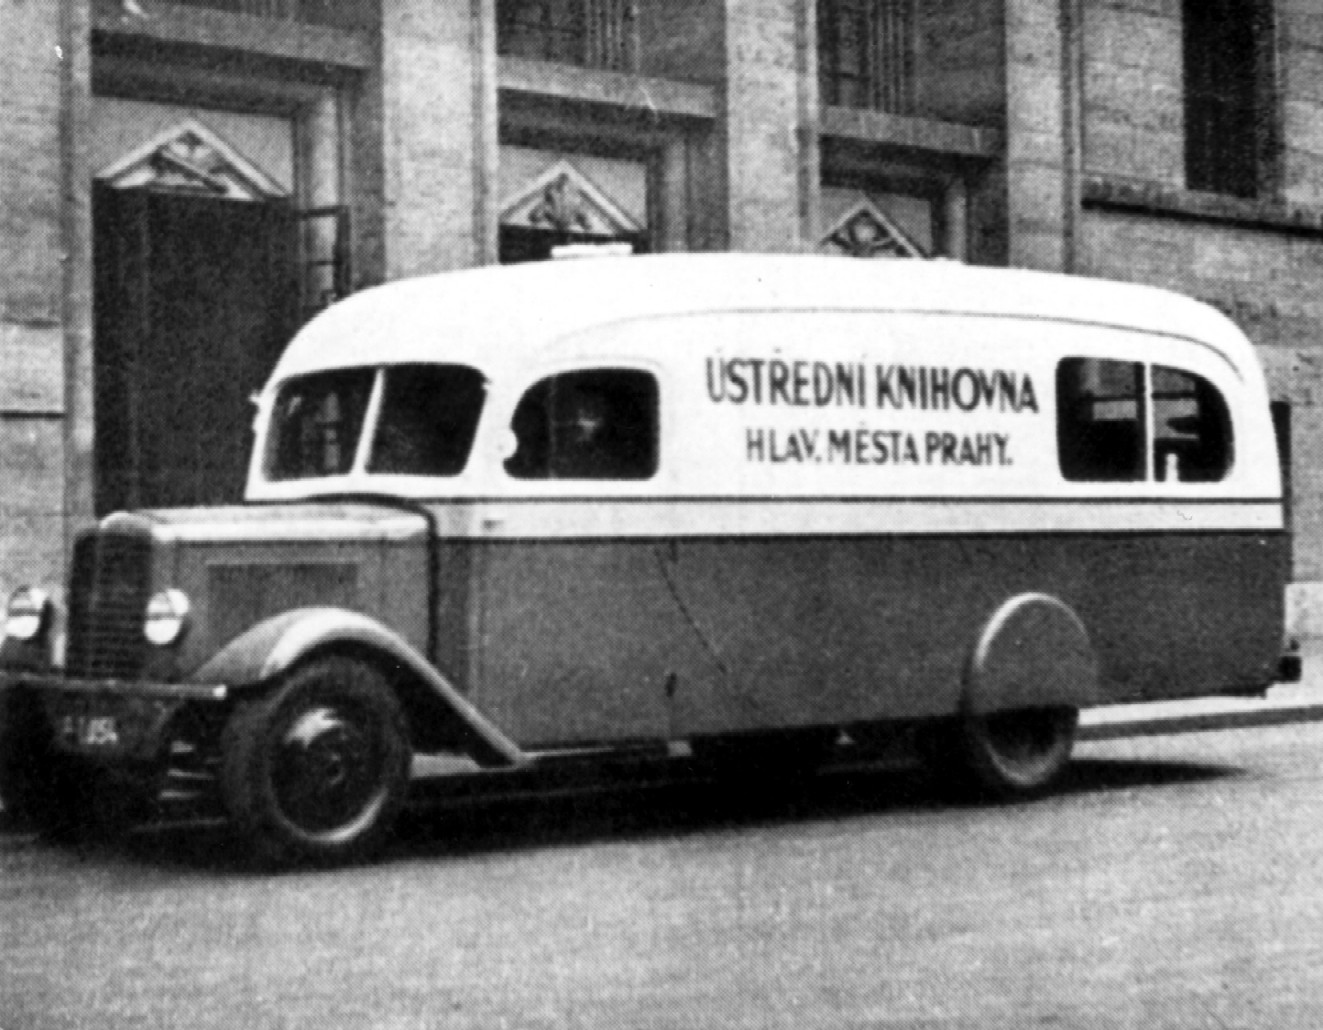 Nejstar prask bibliobus Praga z roku 1939